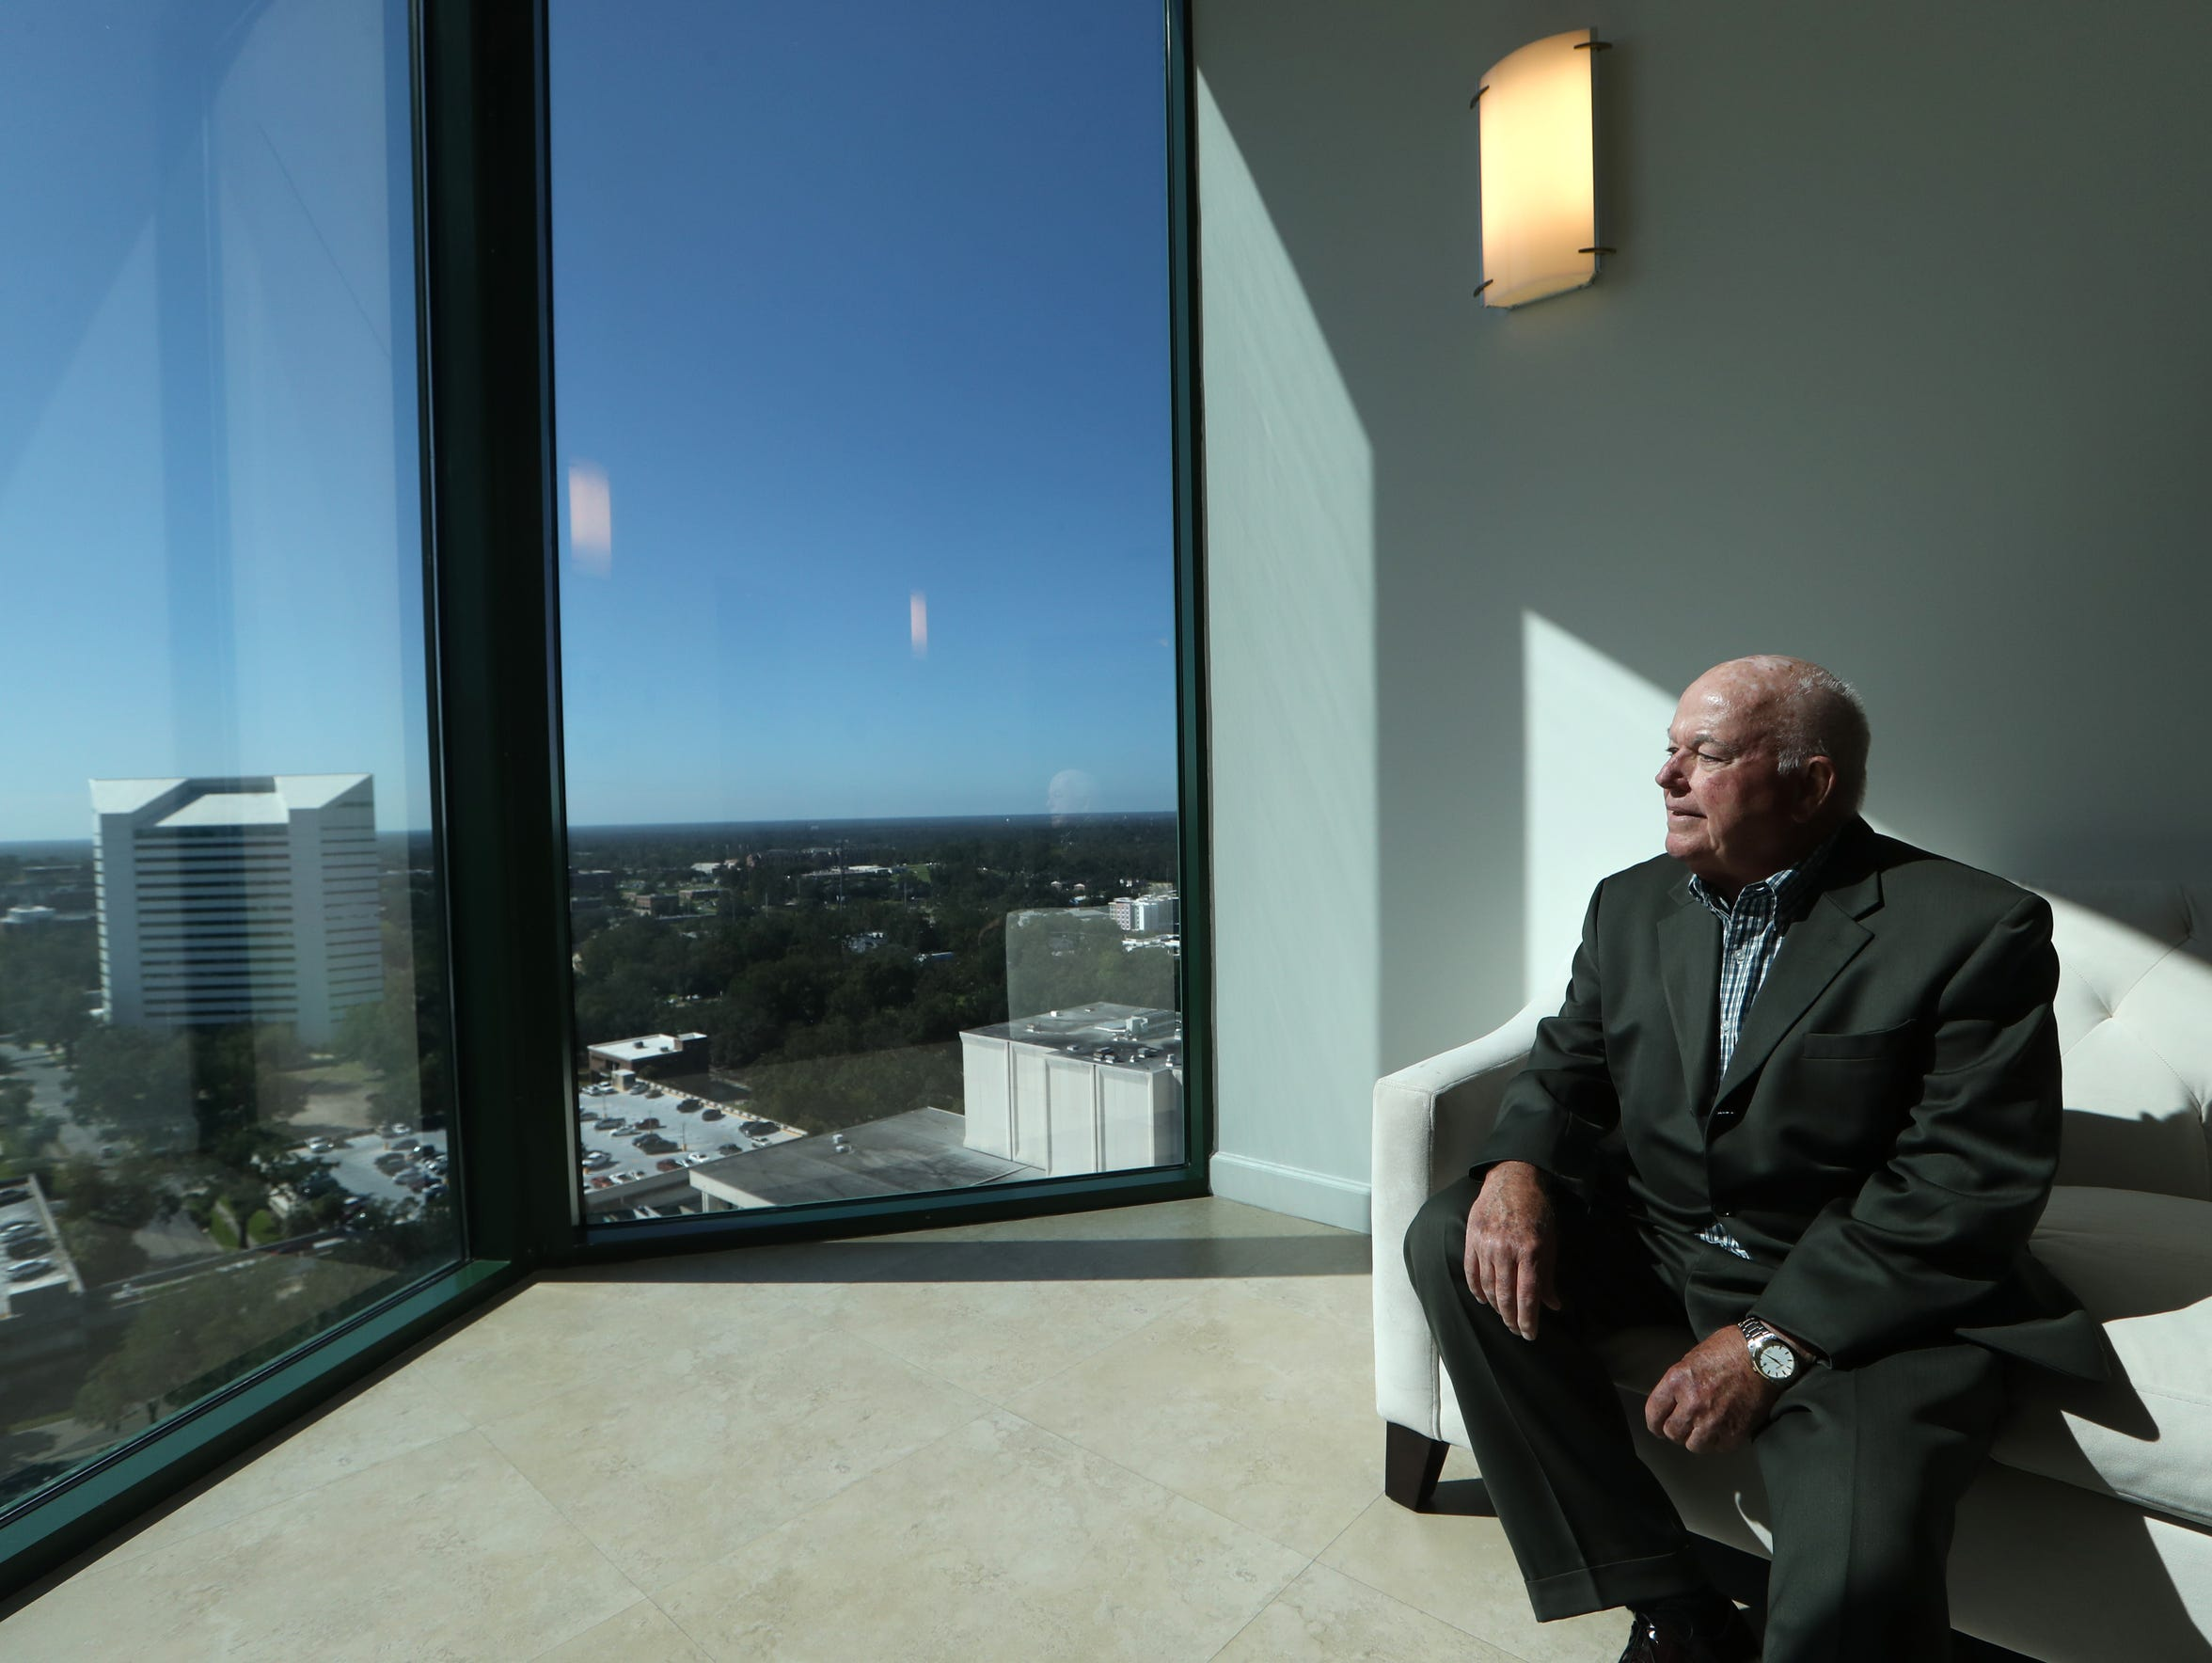 After eight years of legal battles, Don Carrigan continues